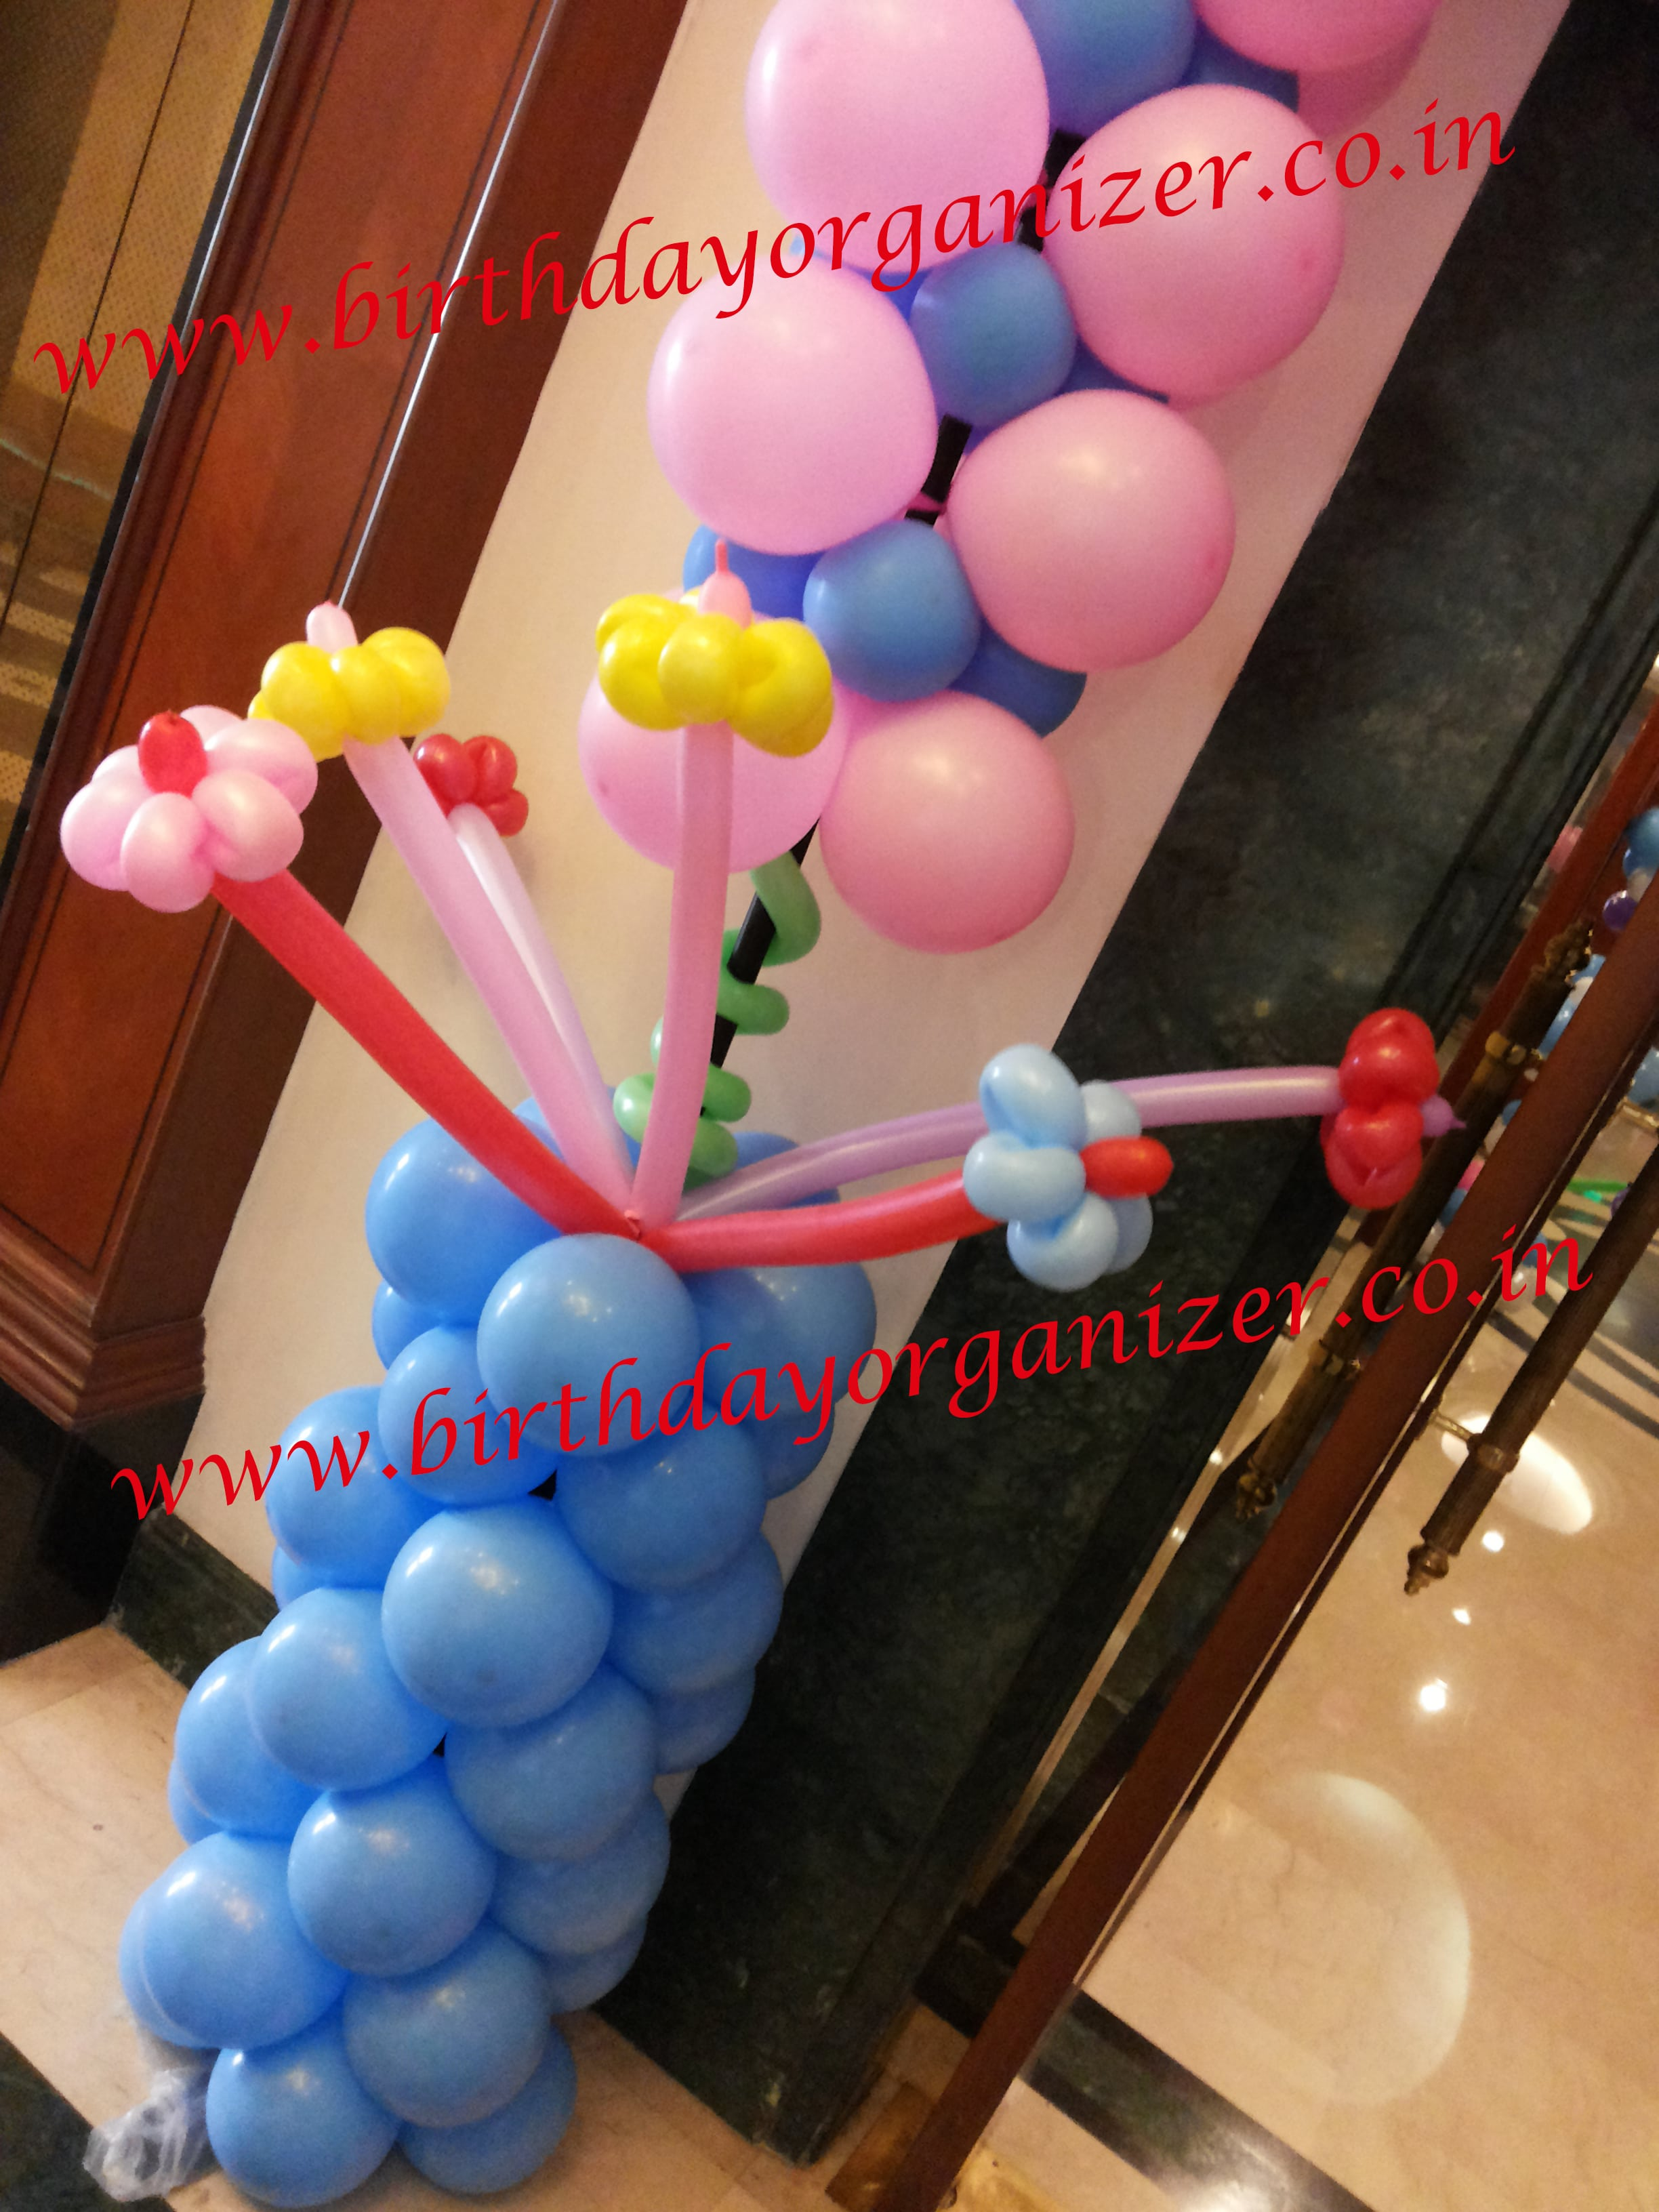 Baby shower balloon decoration with paper craft in noida delhi ncr gurgaon, Baby shower paper craft decoration in noida, Baby shower paper craft decoration in delhi,